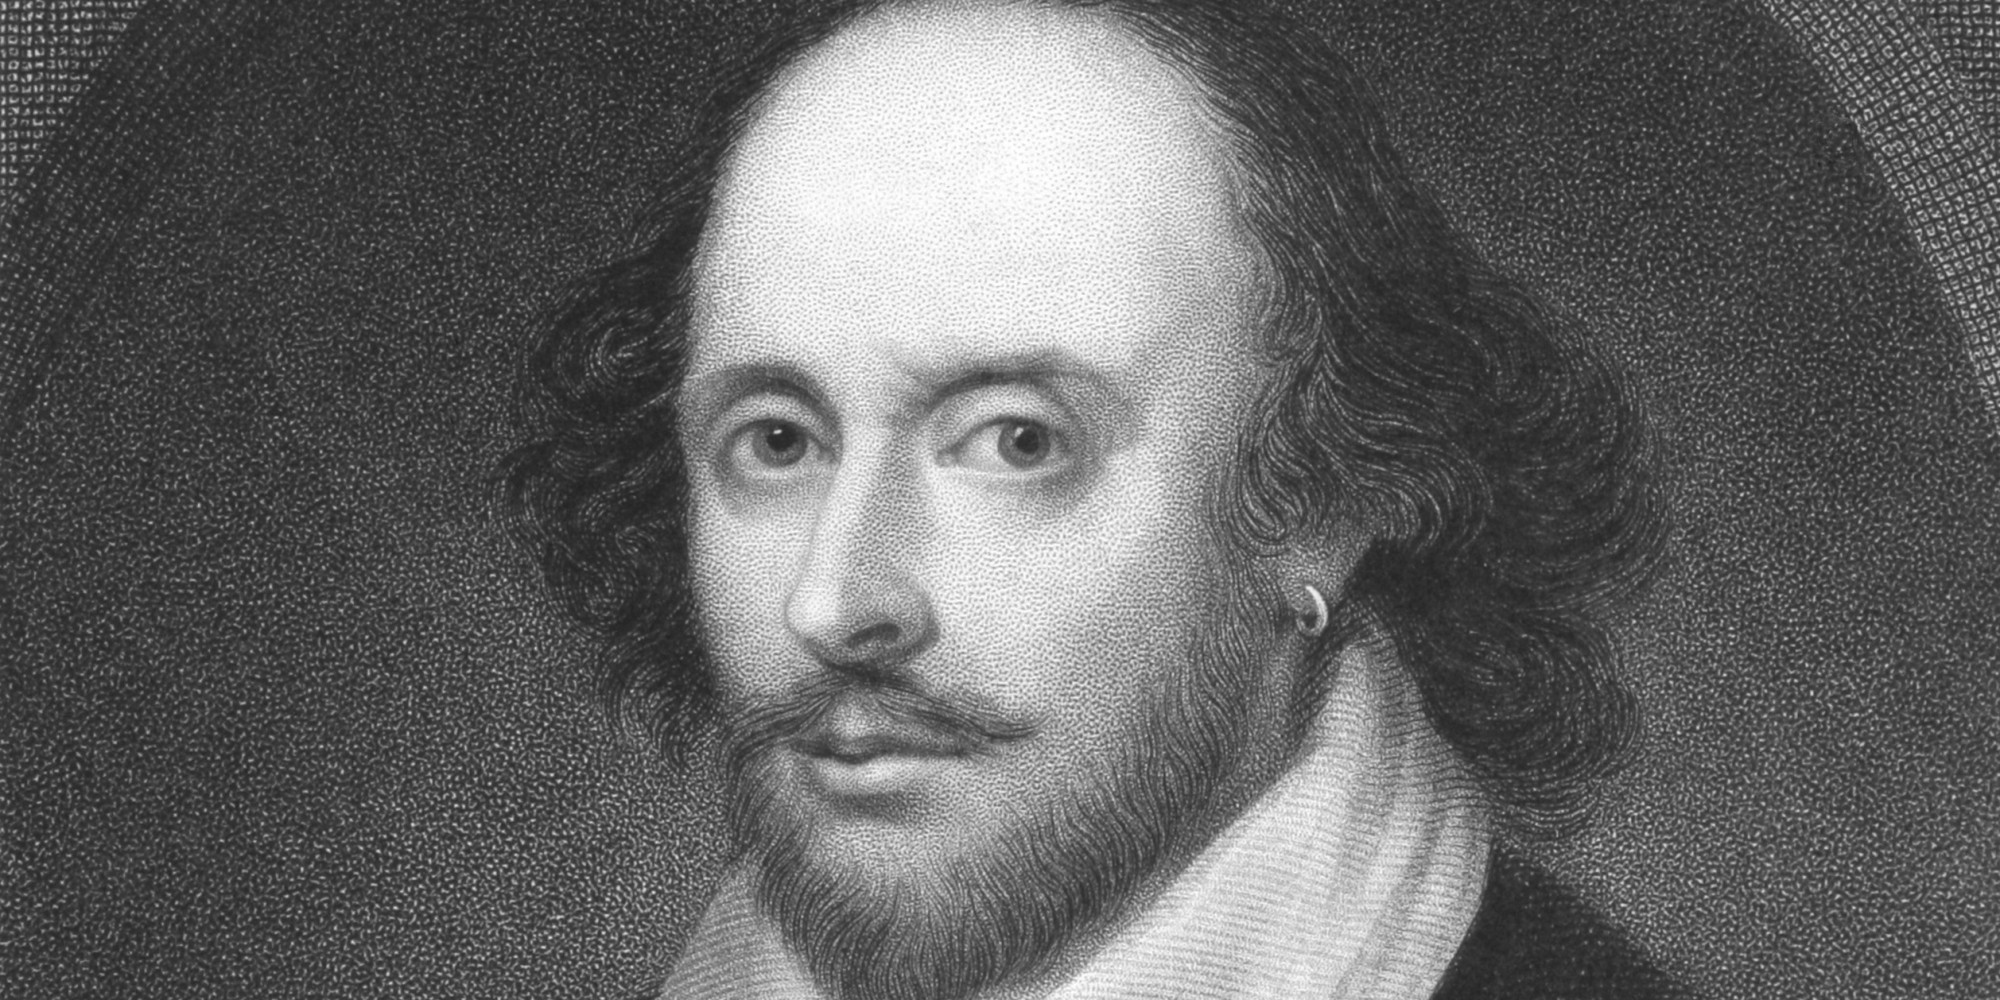 o-william-shakespeare-facebook.jpg